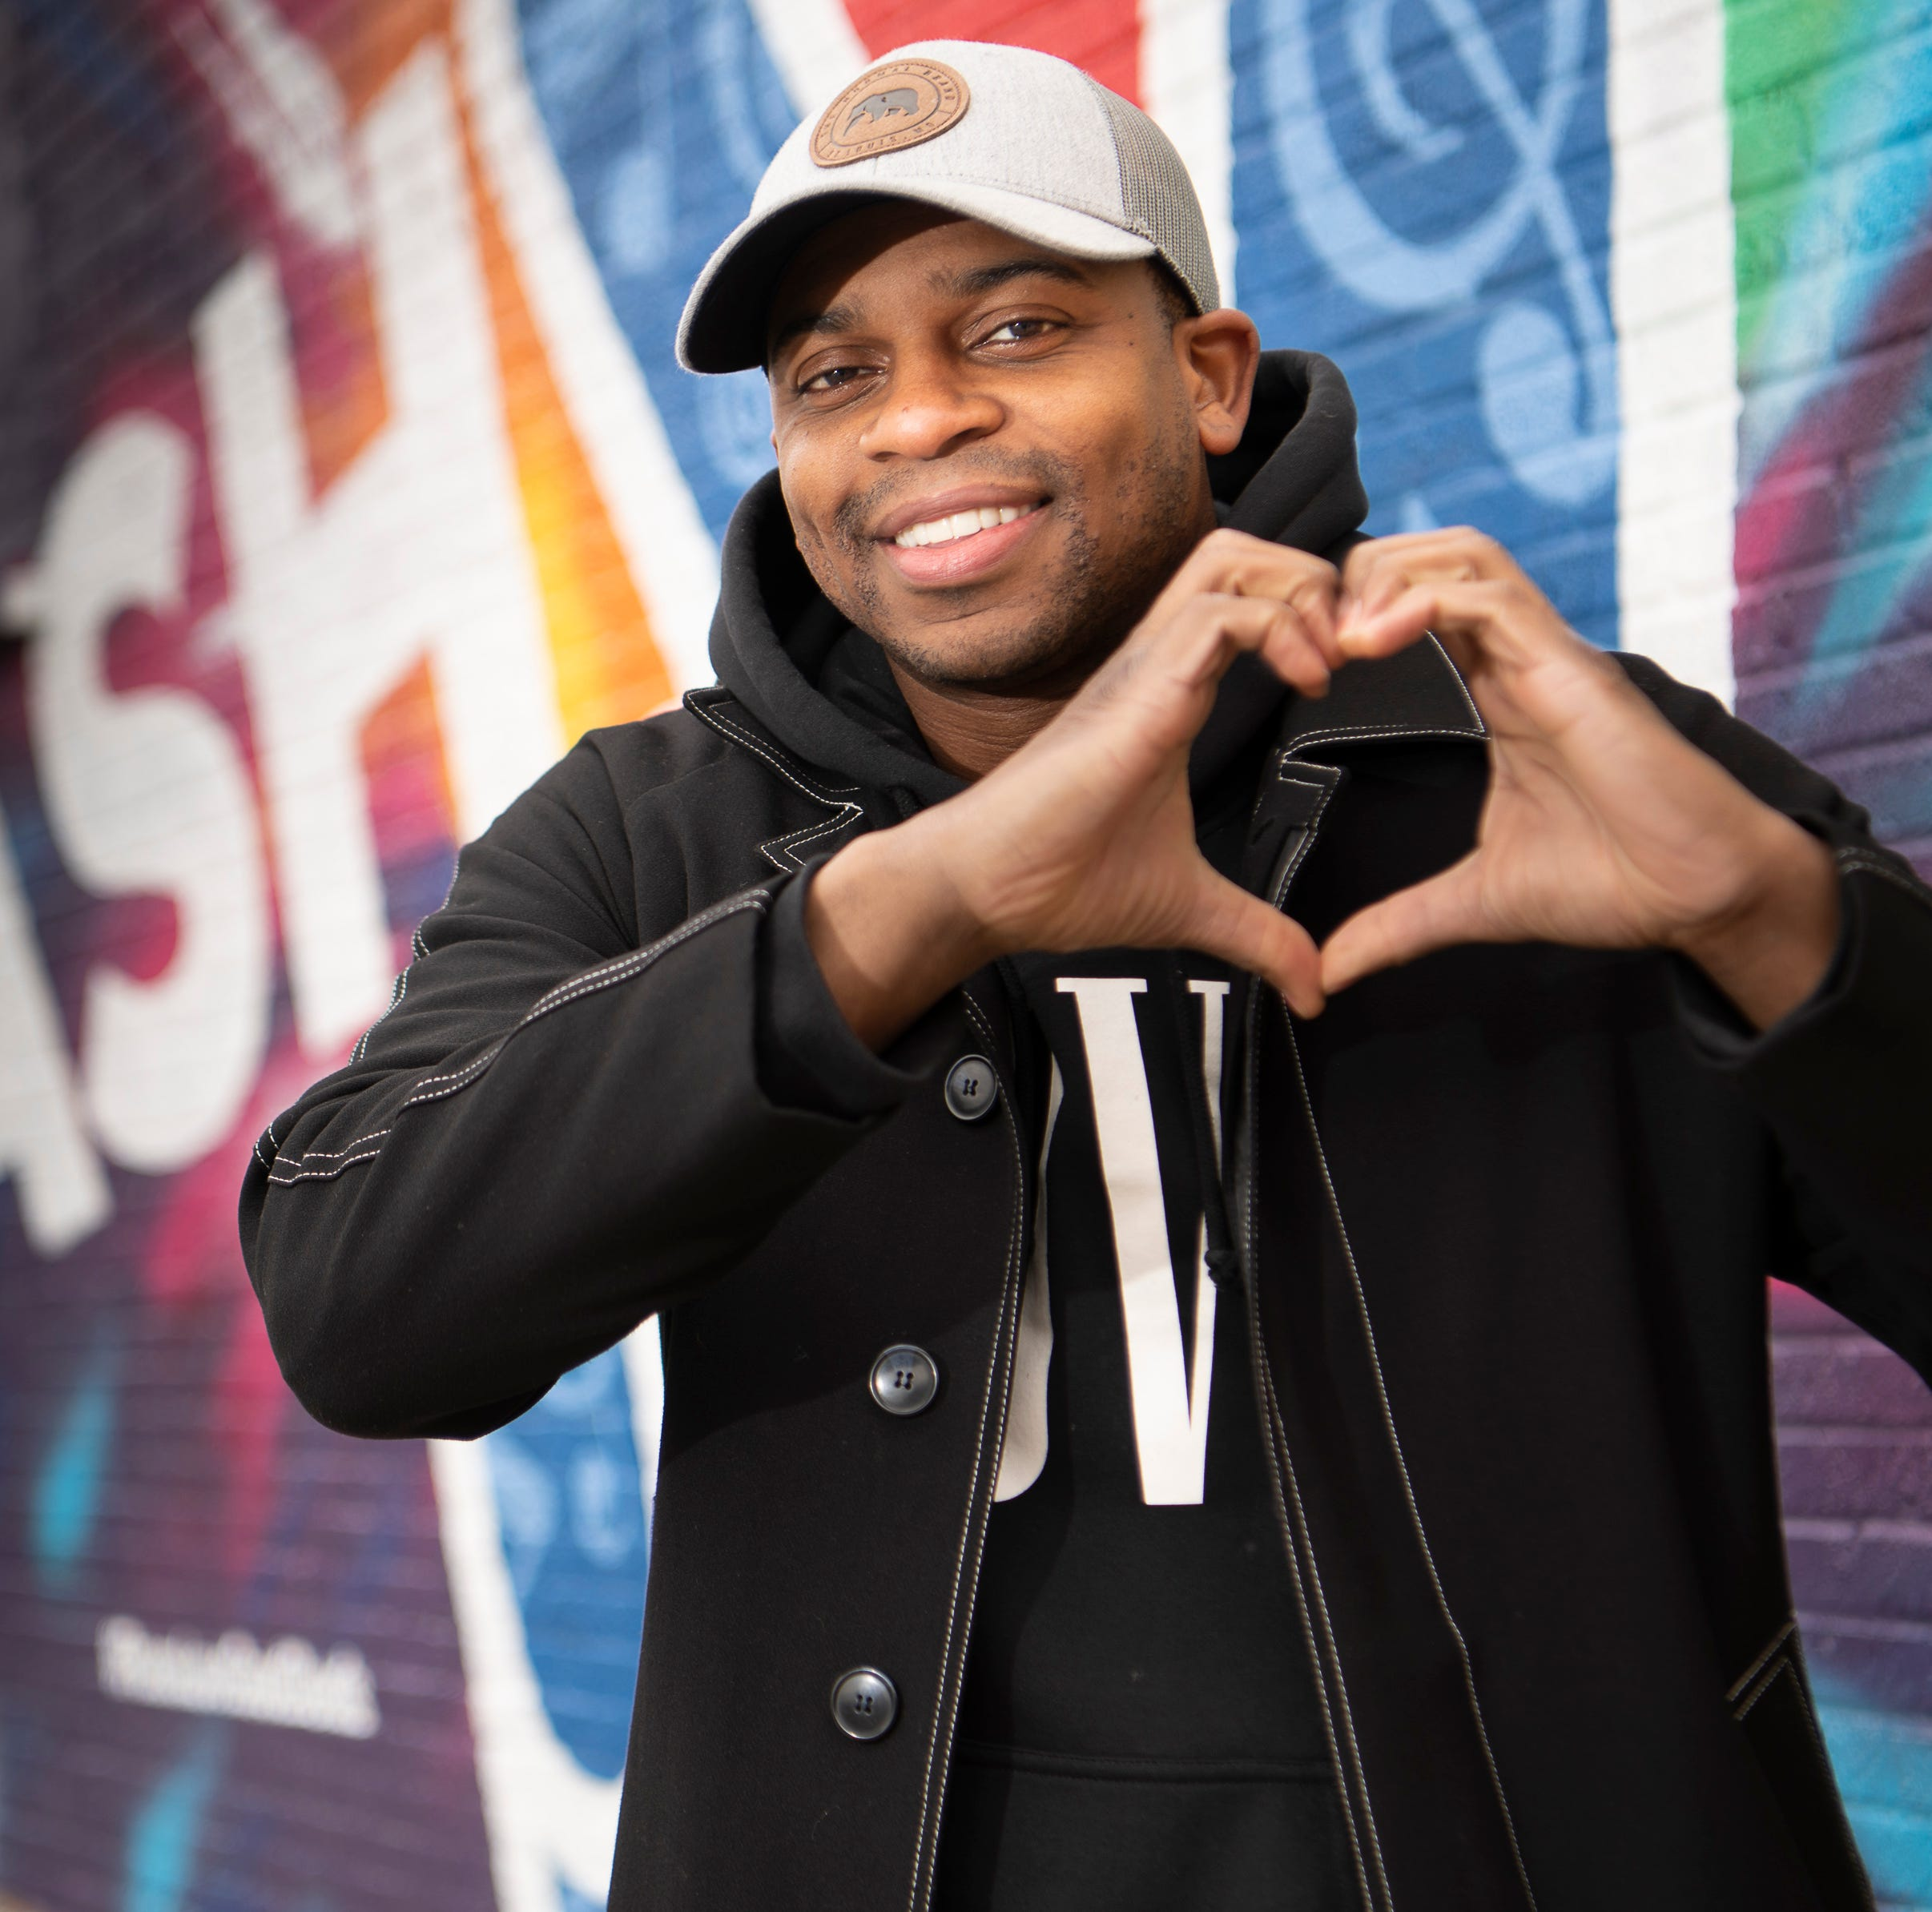 Jimmie Allen tweets BET won't support him as a black country artist, but Nashville will